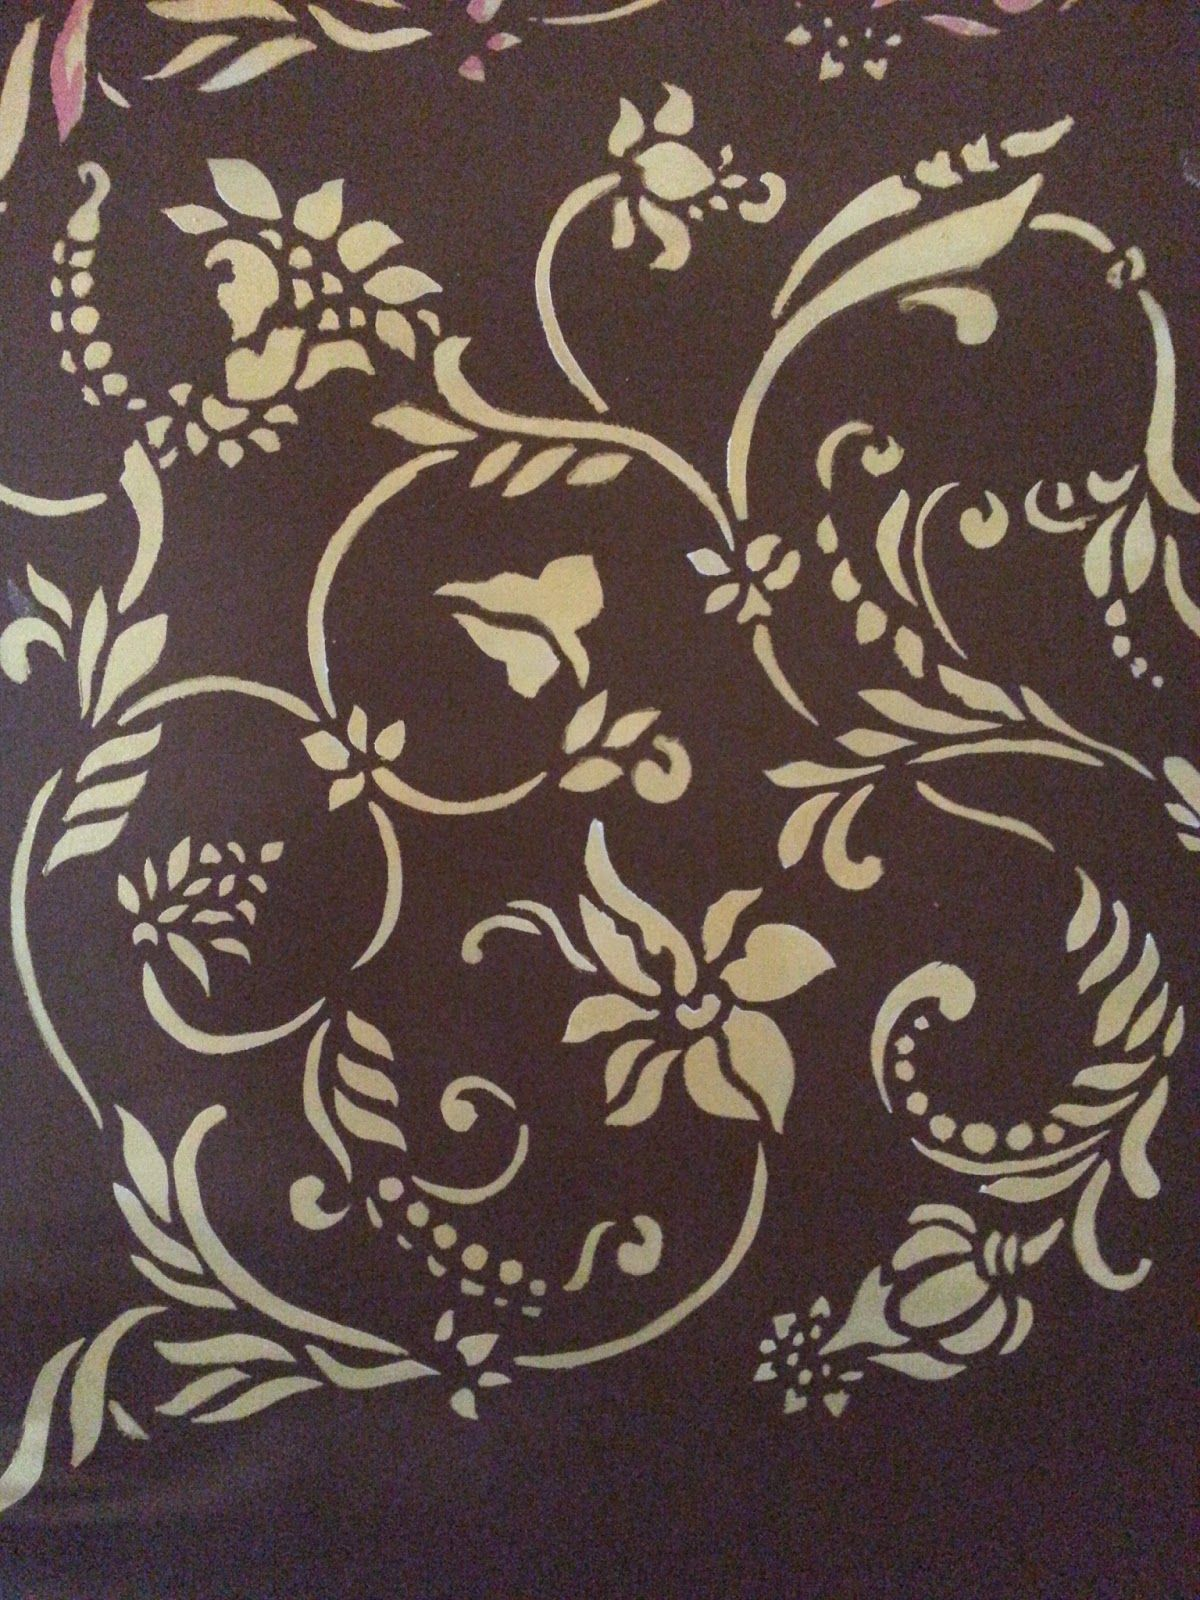 Wall Painting Flower Stencils With Charming Gold And Brown Color Design